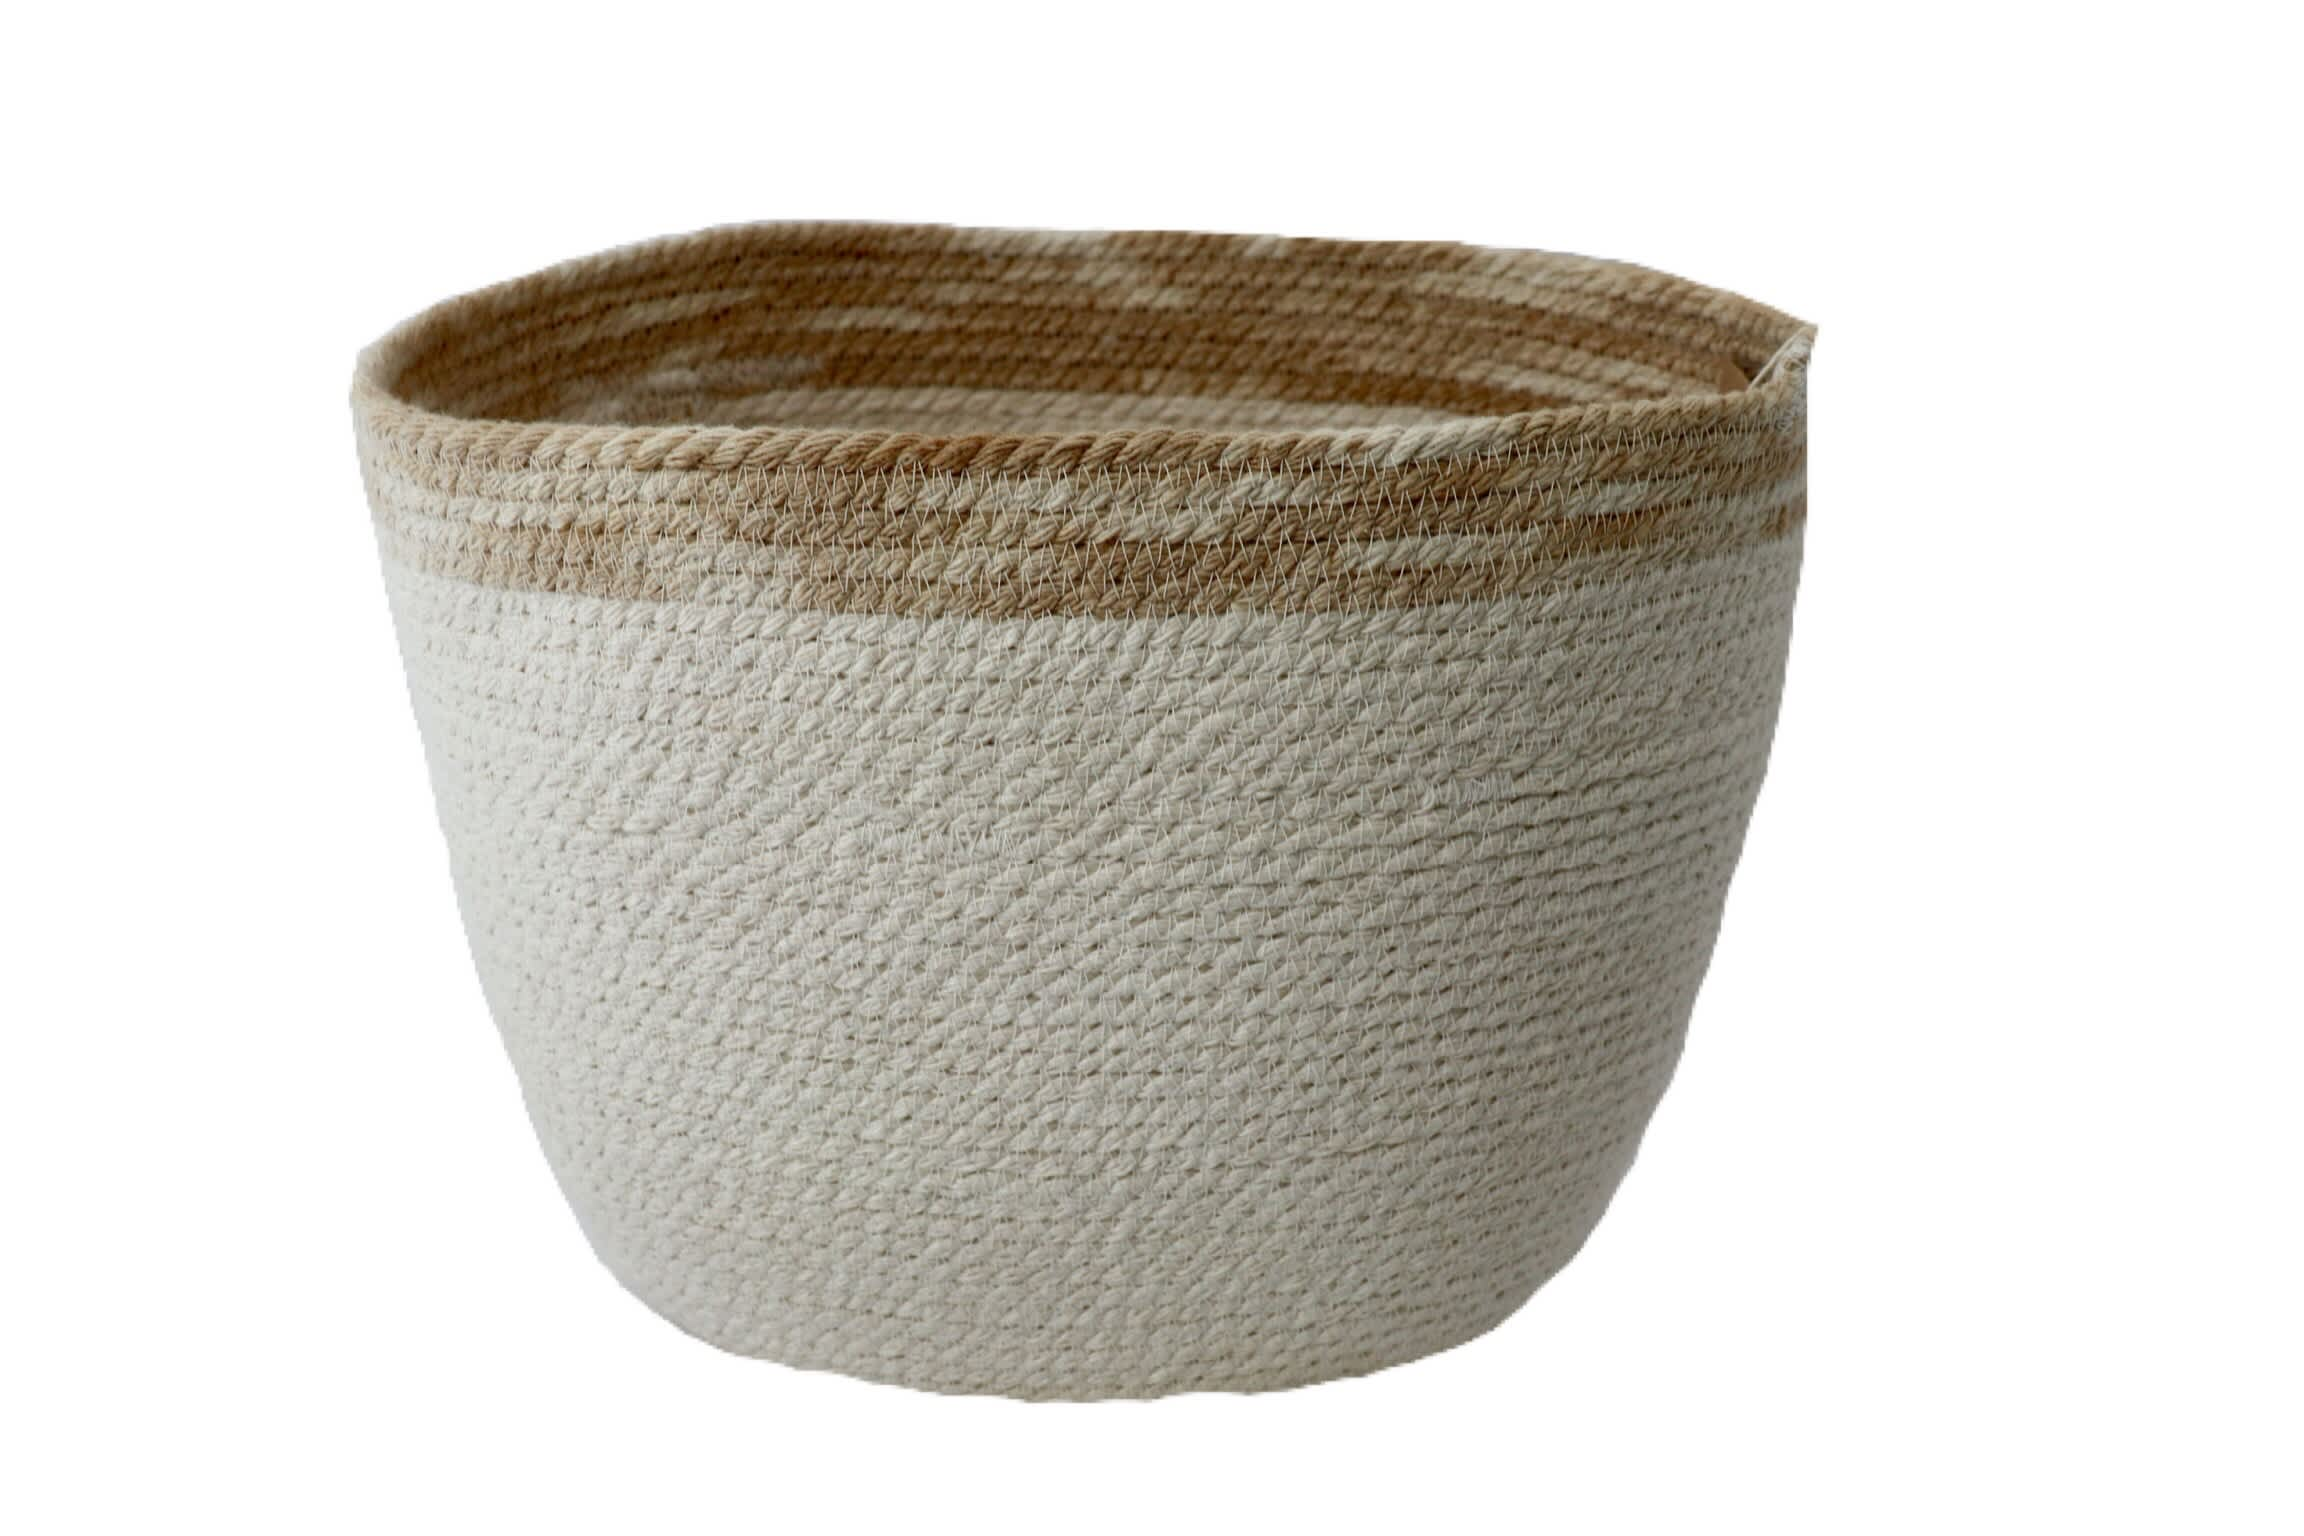 Rope Works Vessel Rope Basket